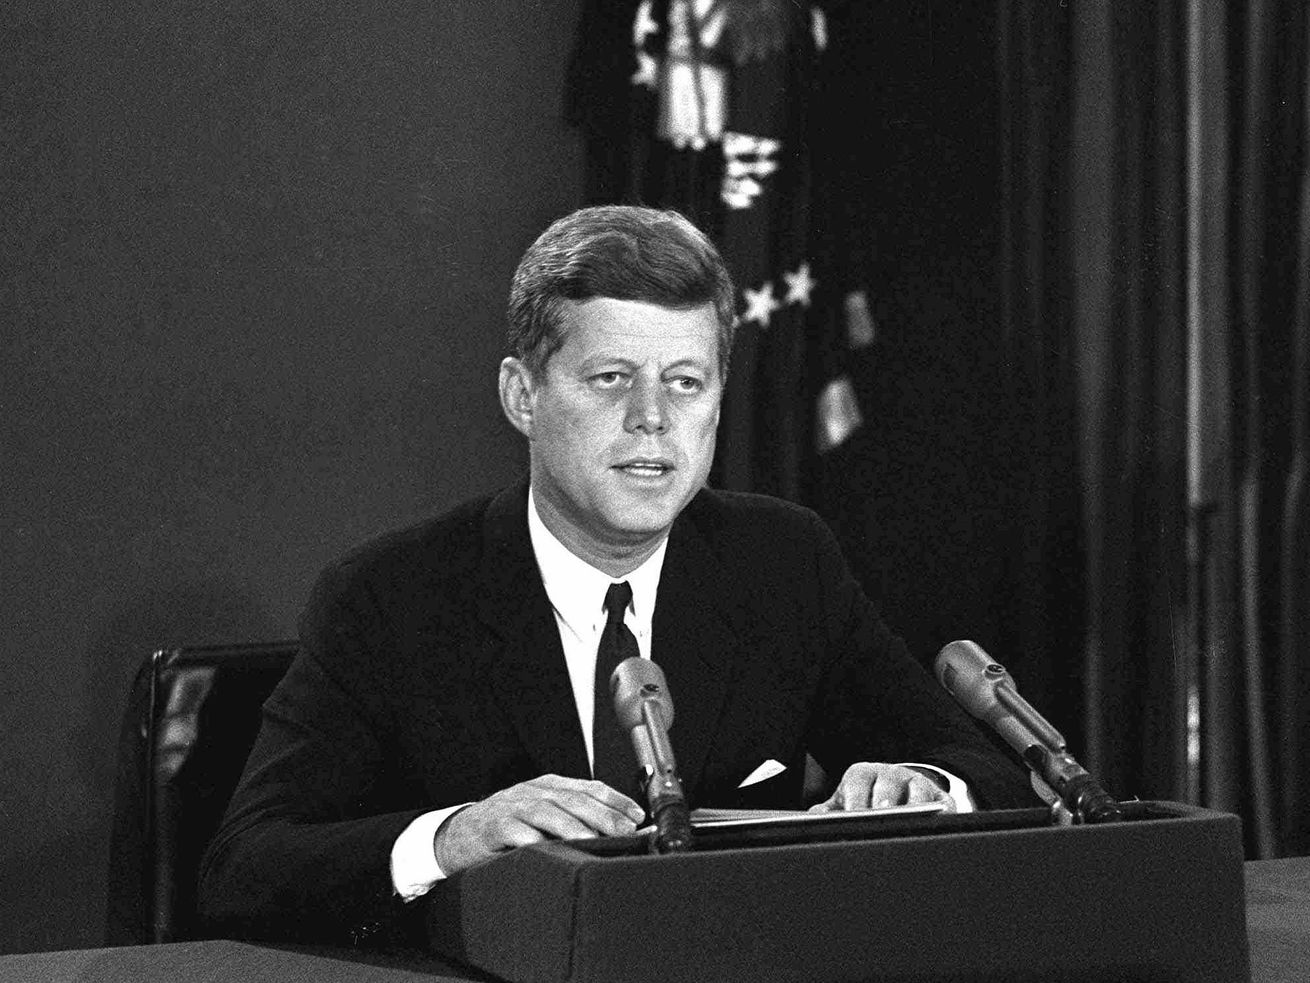 The Cuban missile crisis remains October's scariest time